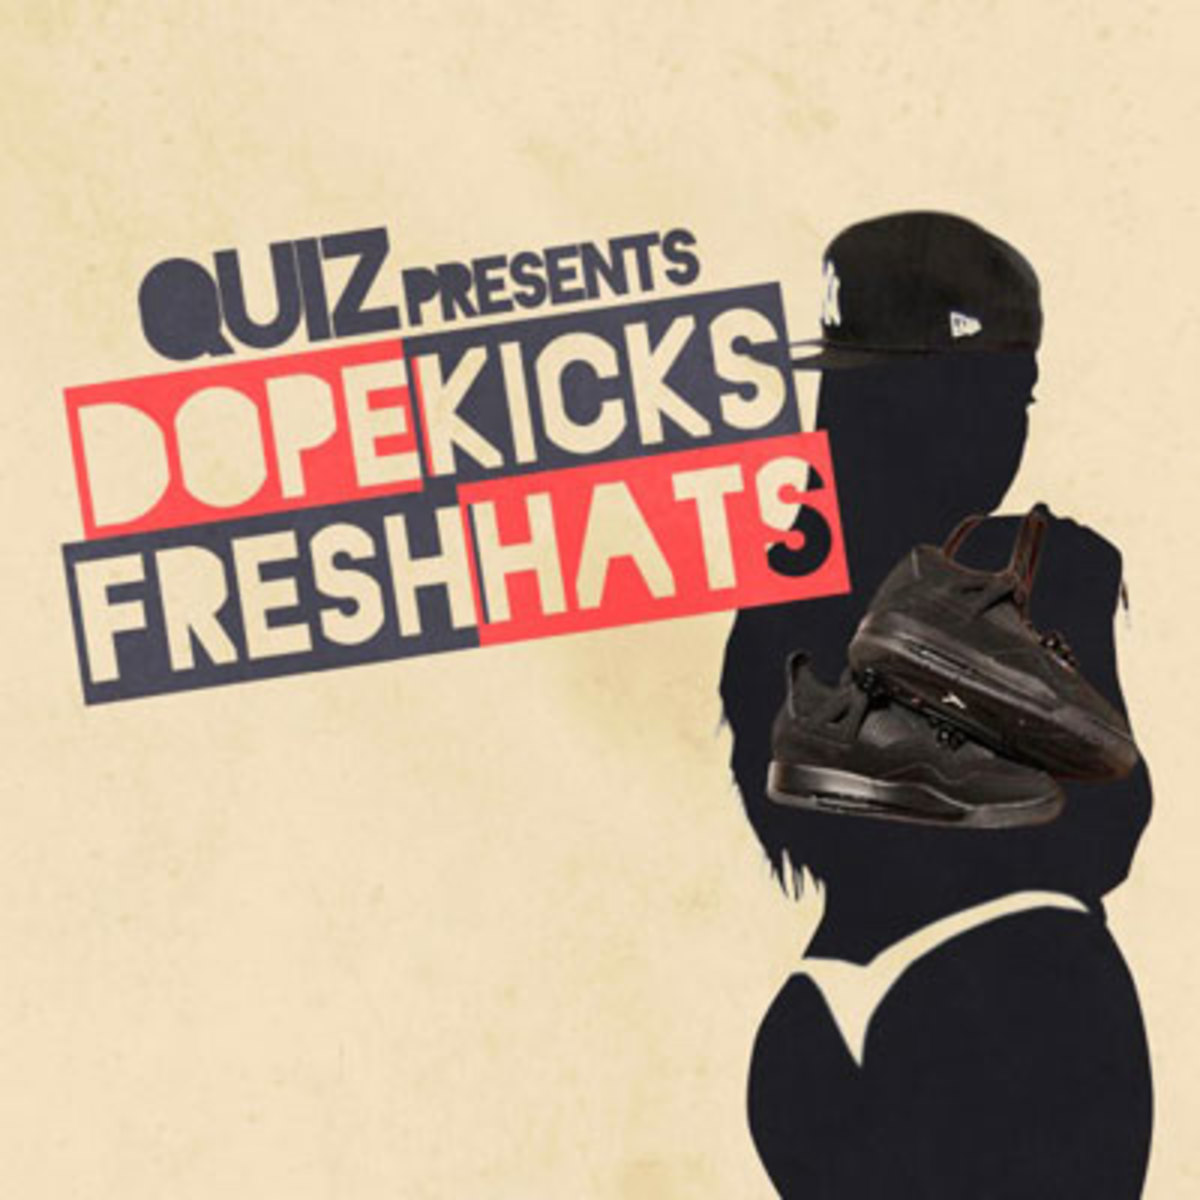 quiz-dopekicks.jpg